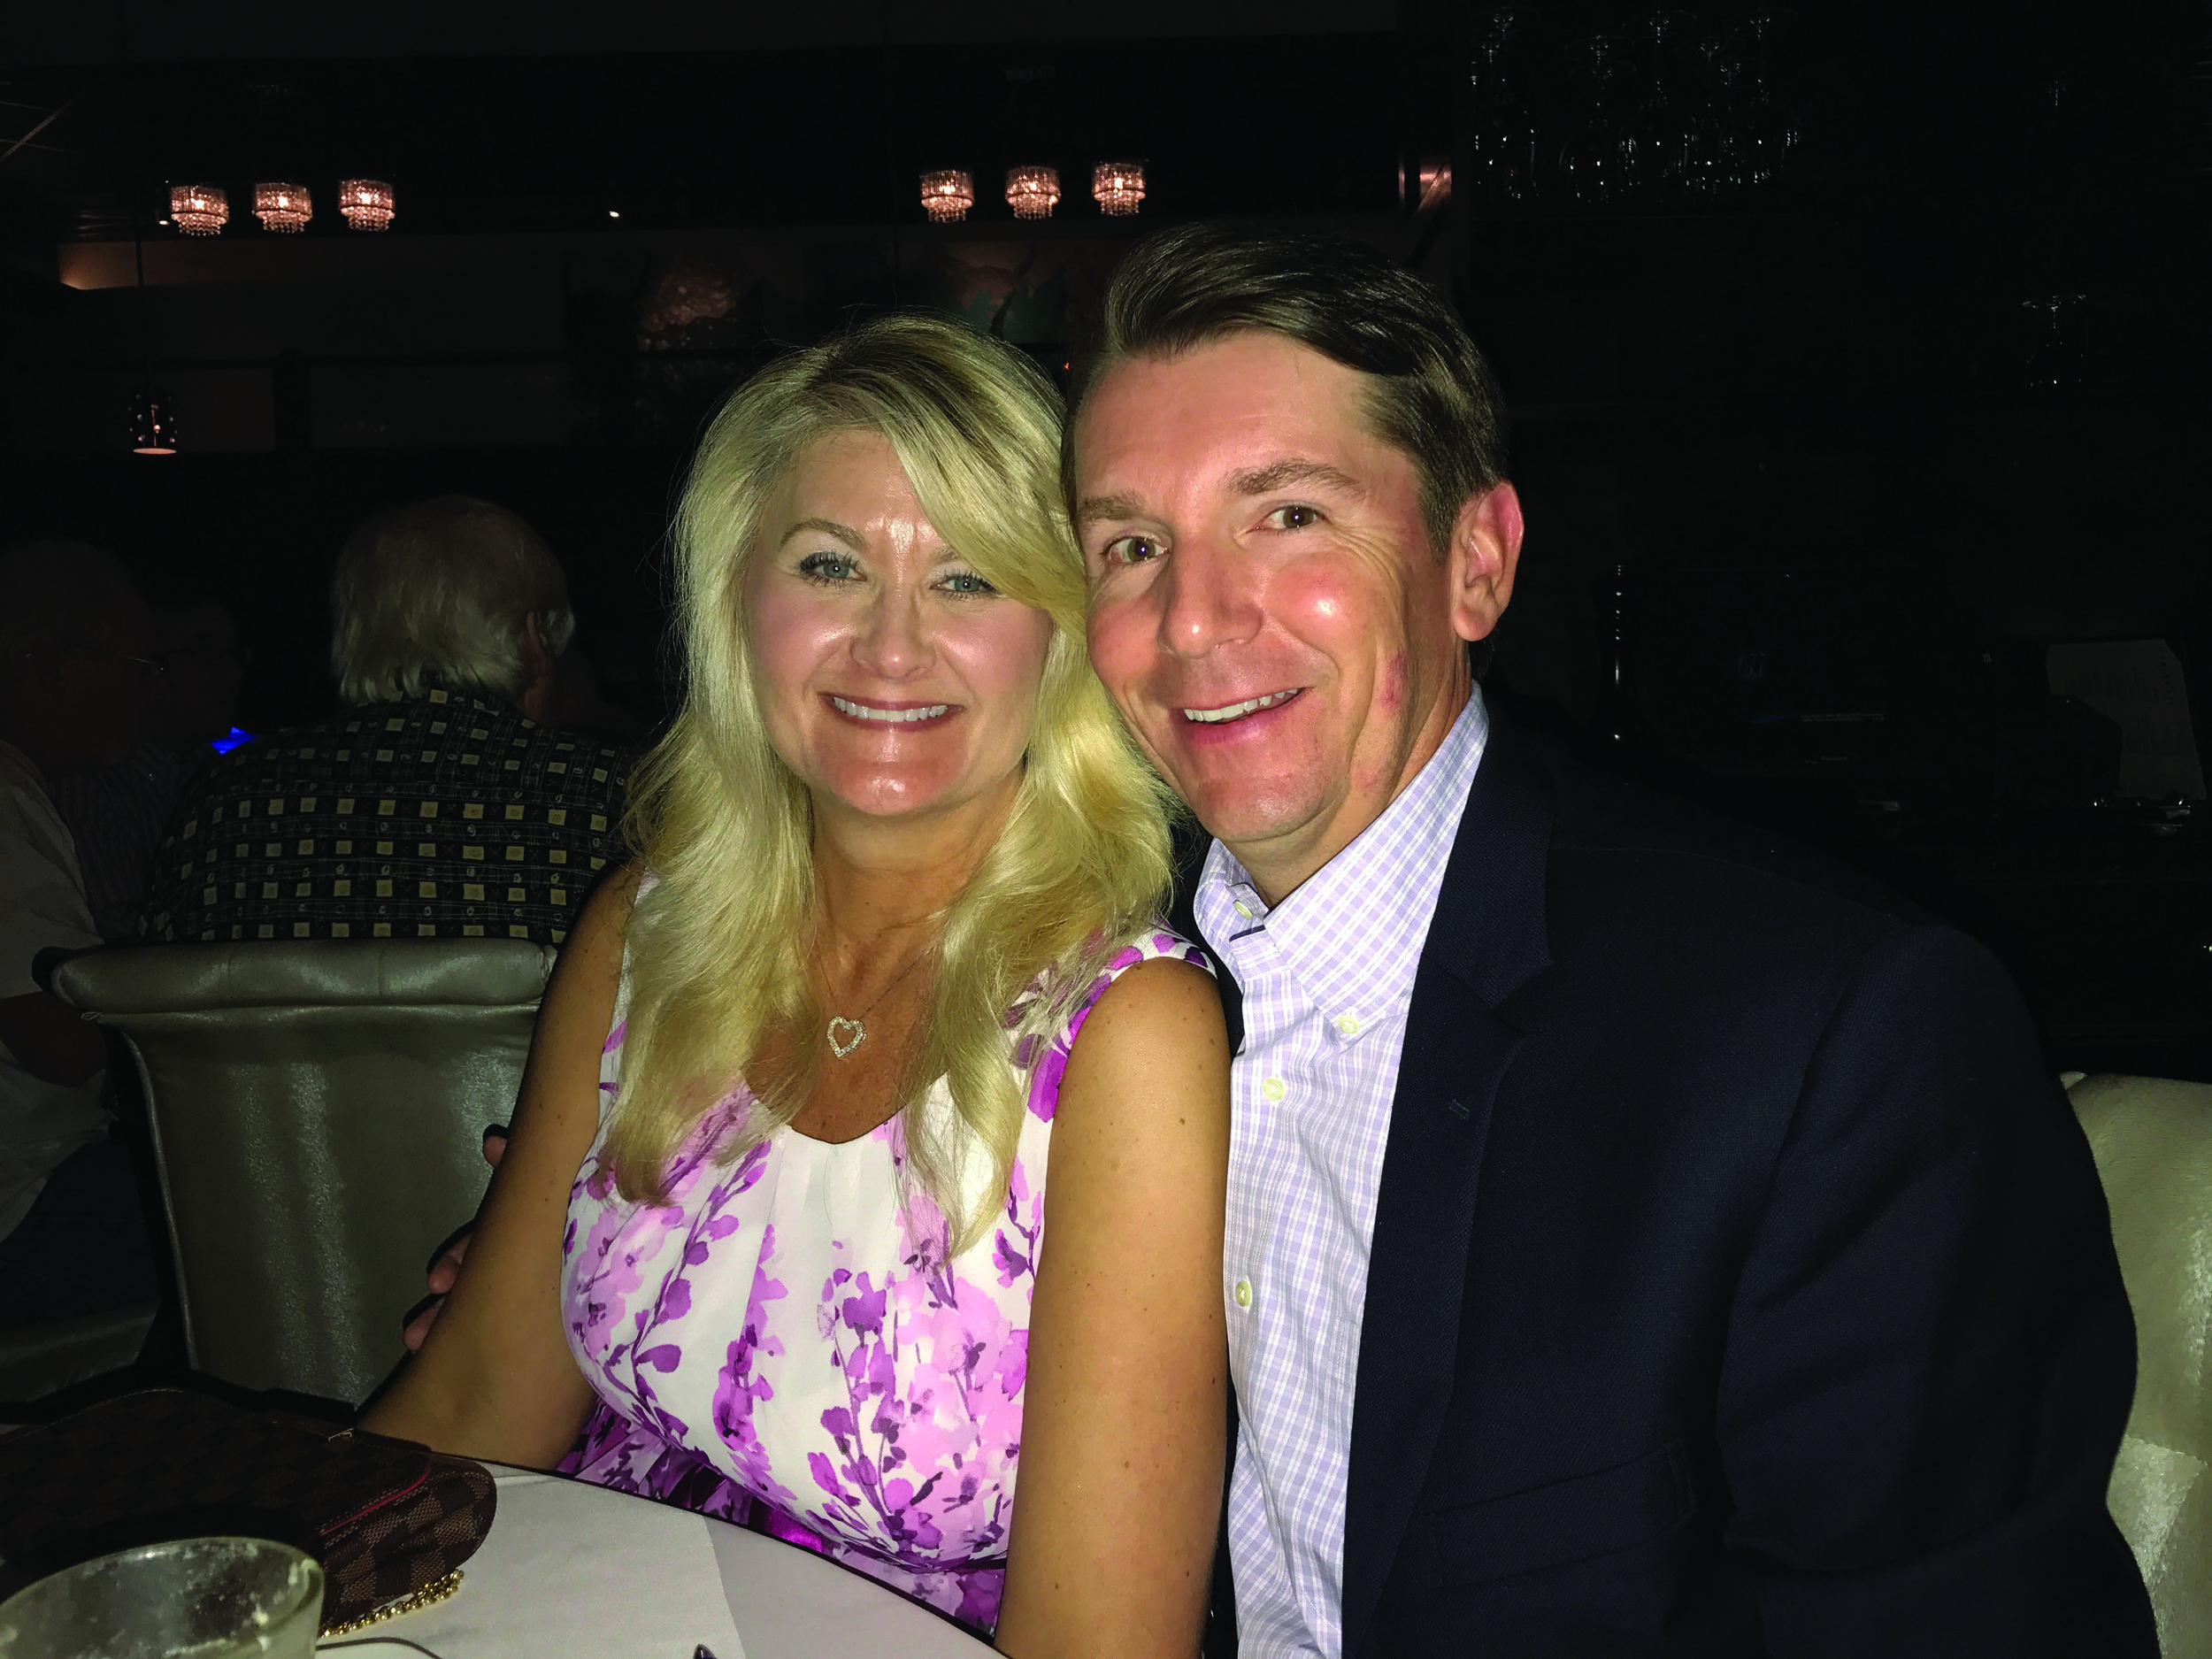 While celebrating their anniversary, Lisa and Rob dined at 677 Prime in New York.